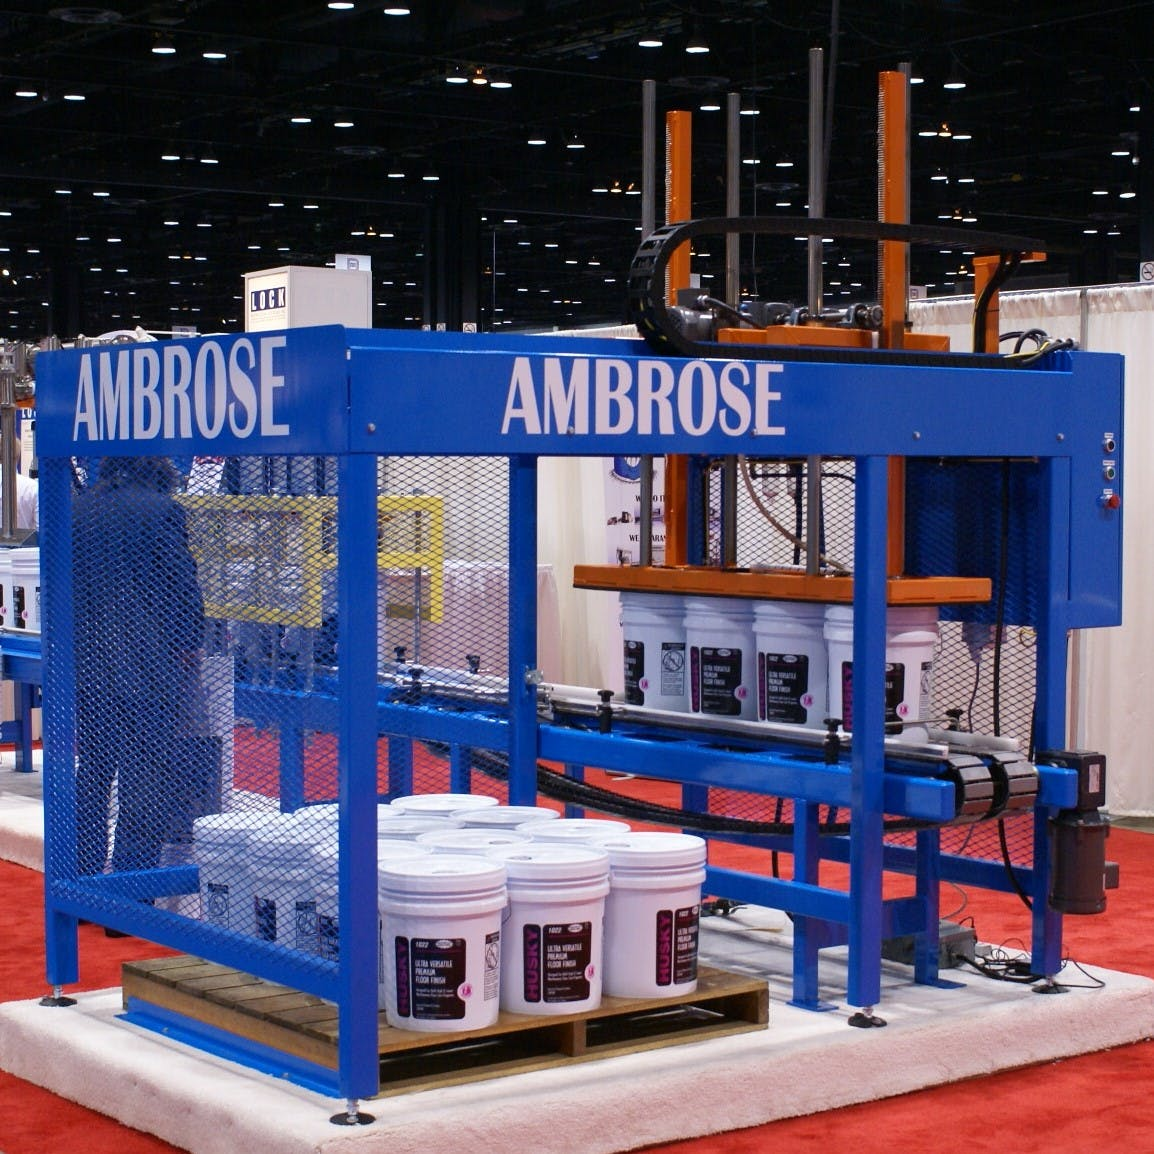 Mini Pal - SEE OUR NEW MINI 5 LINE AT THE CHICAGO PACK EXPO IN NOV.   BOOTH N 4804 - sold by Ambrose Packaging Systems